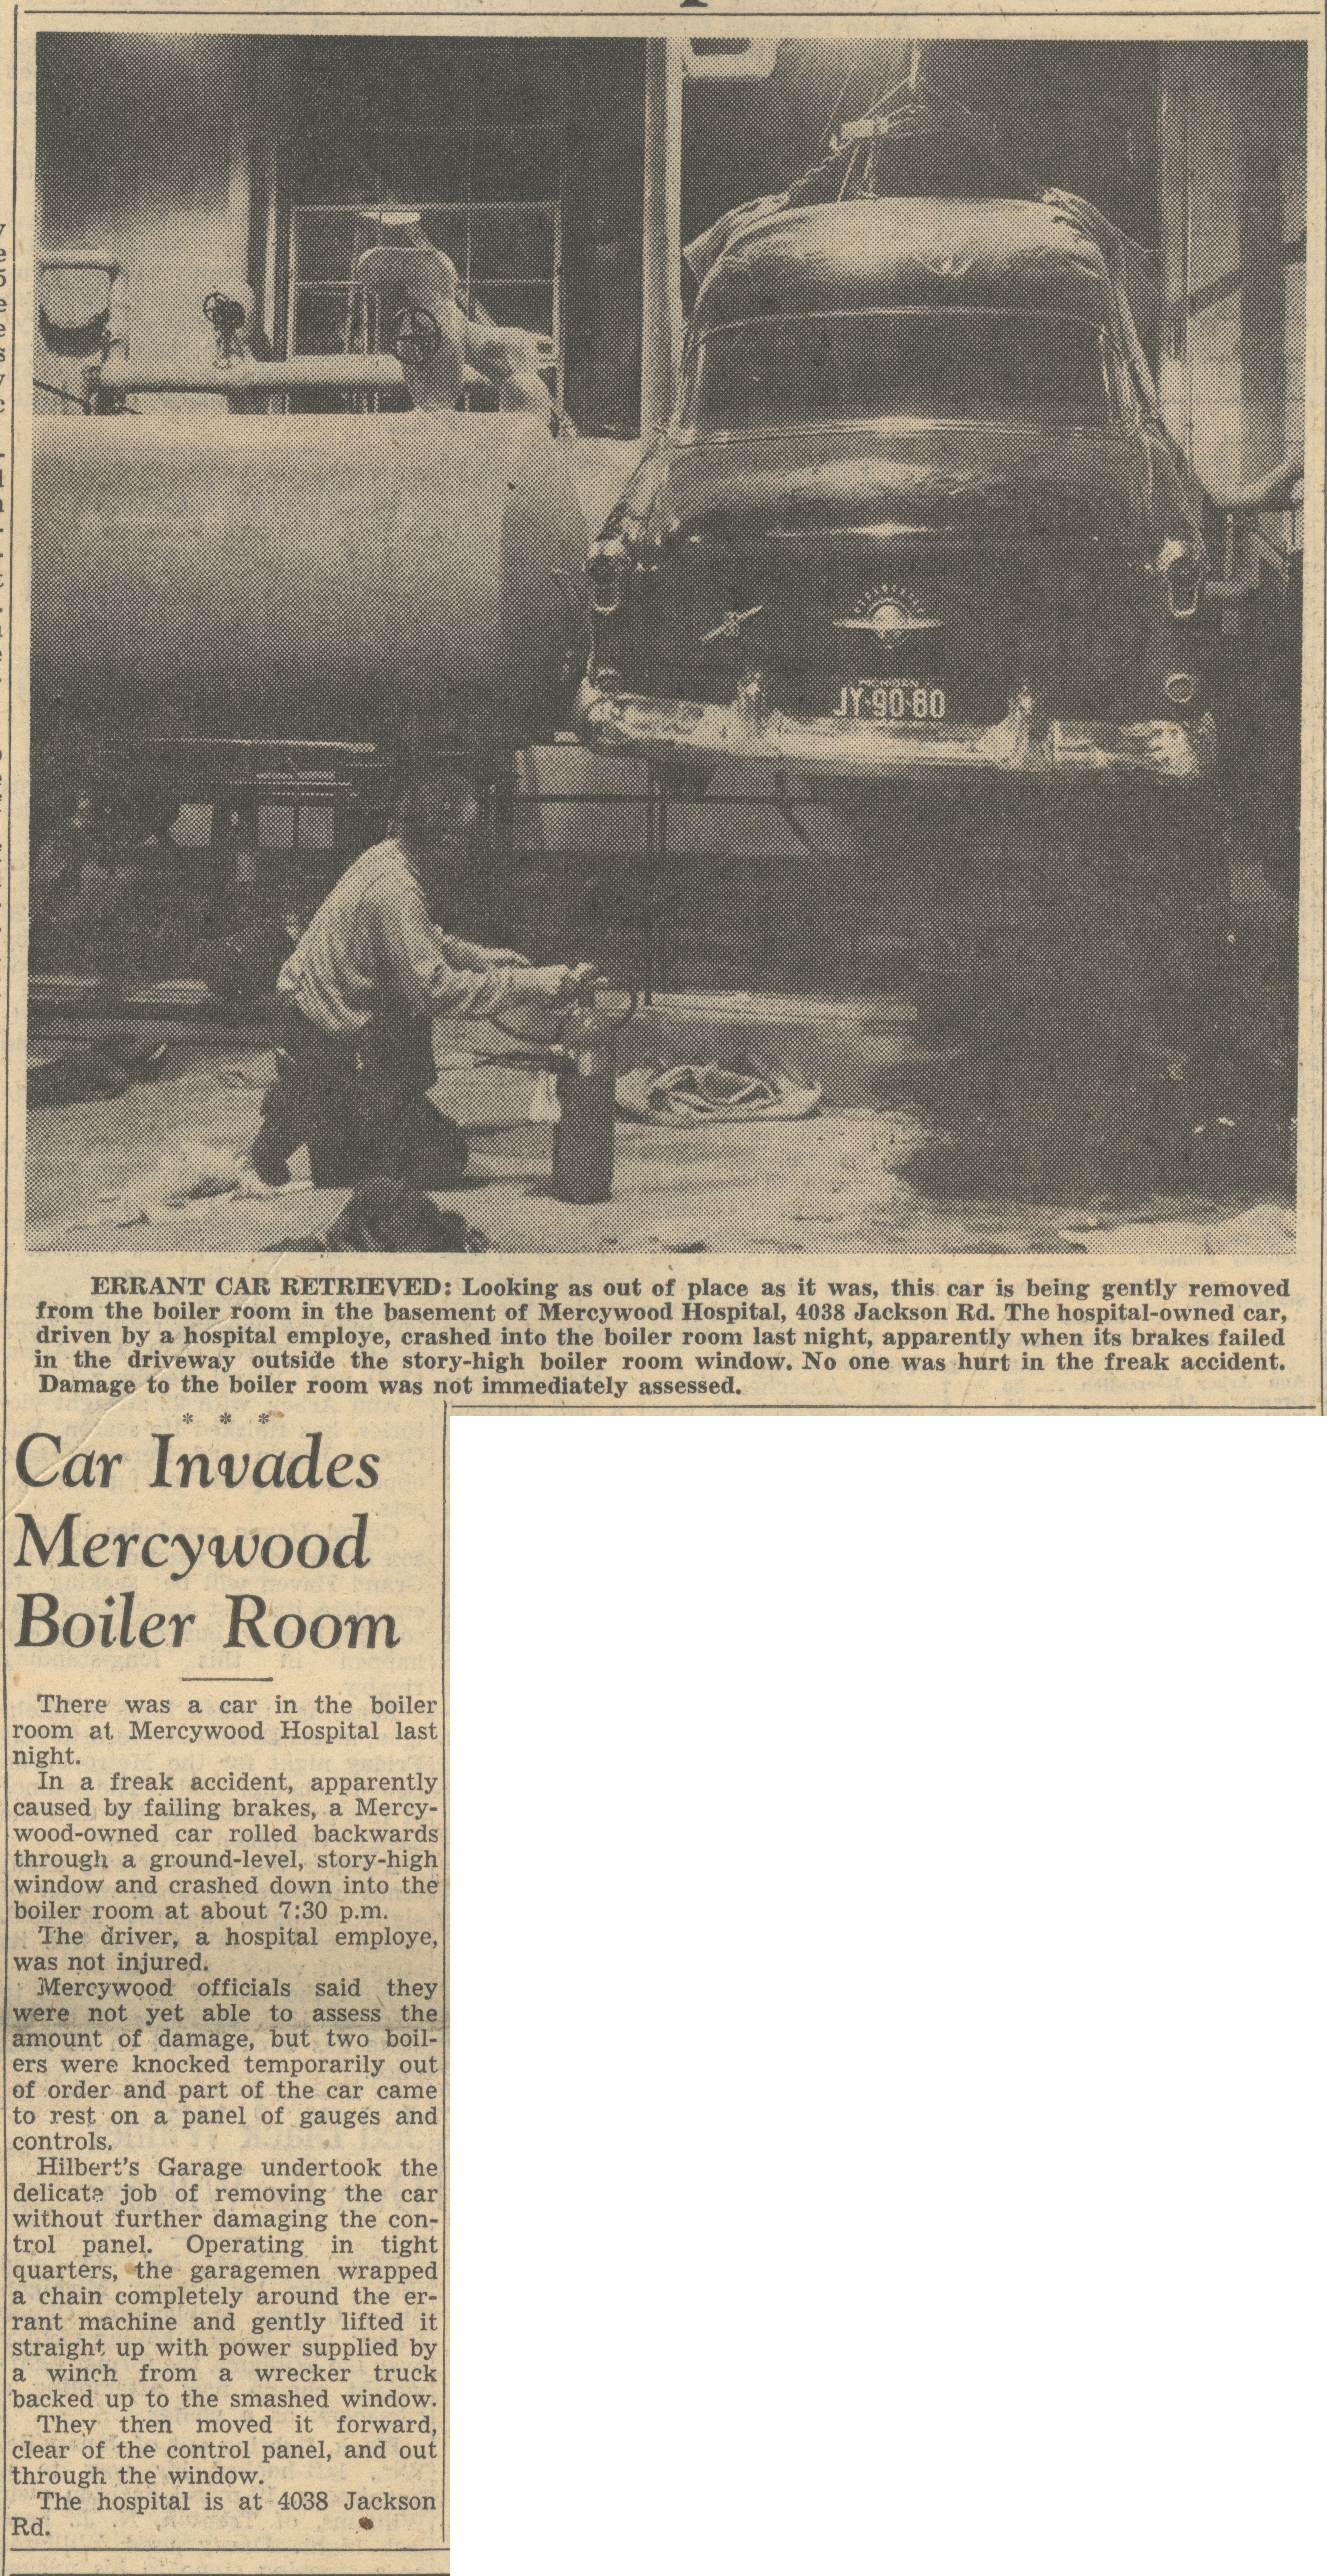 Car Invades Mercywood Boiler Room image